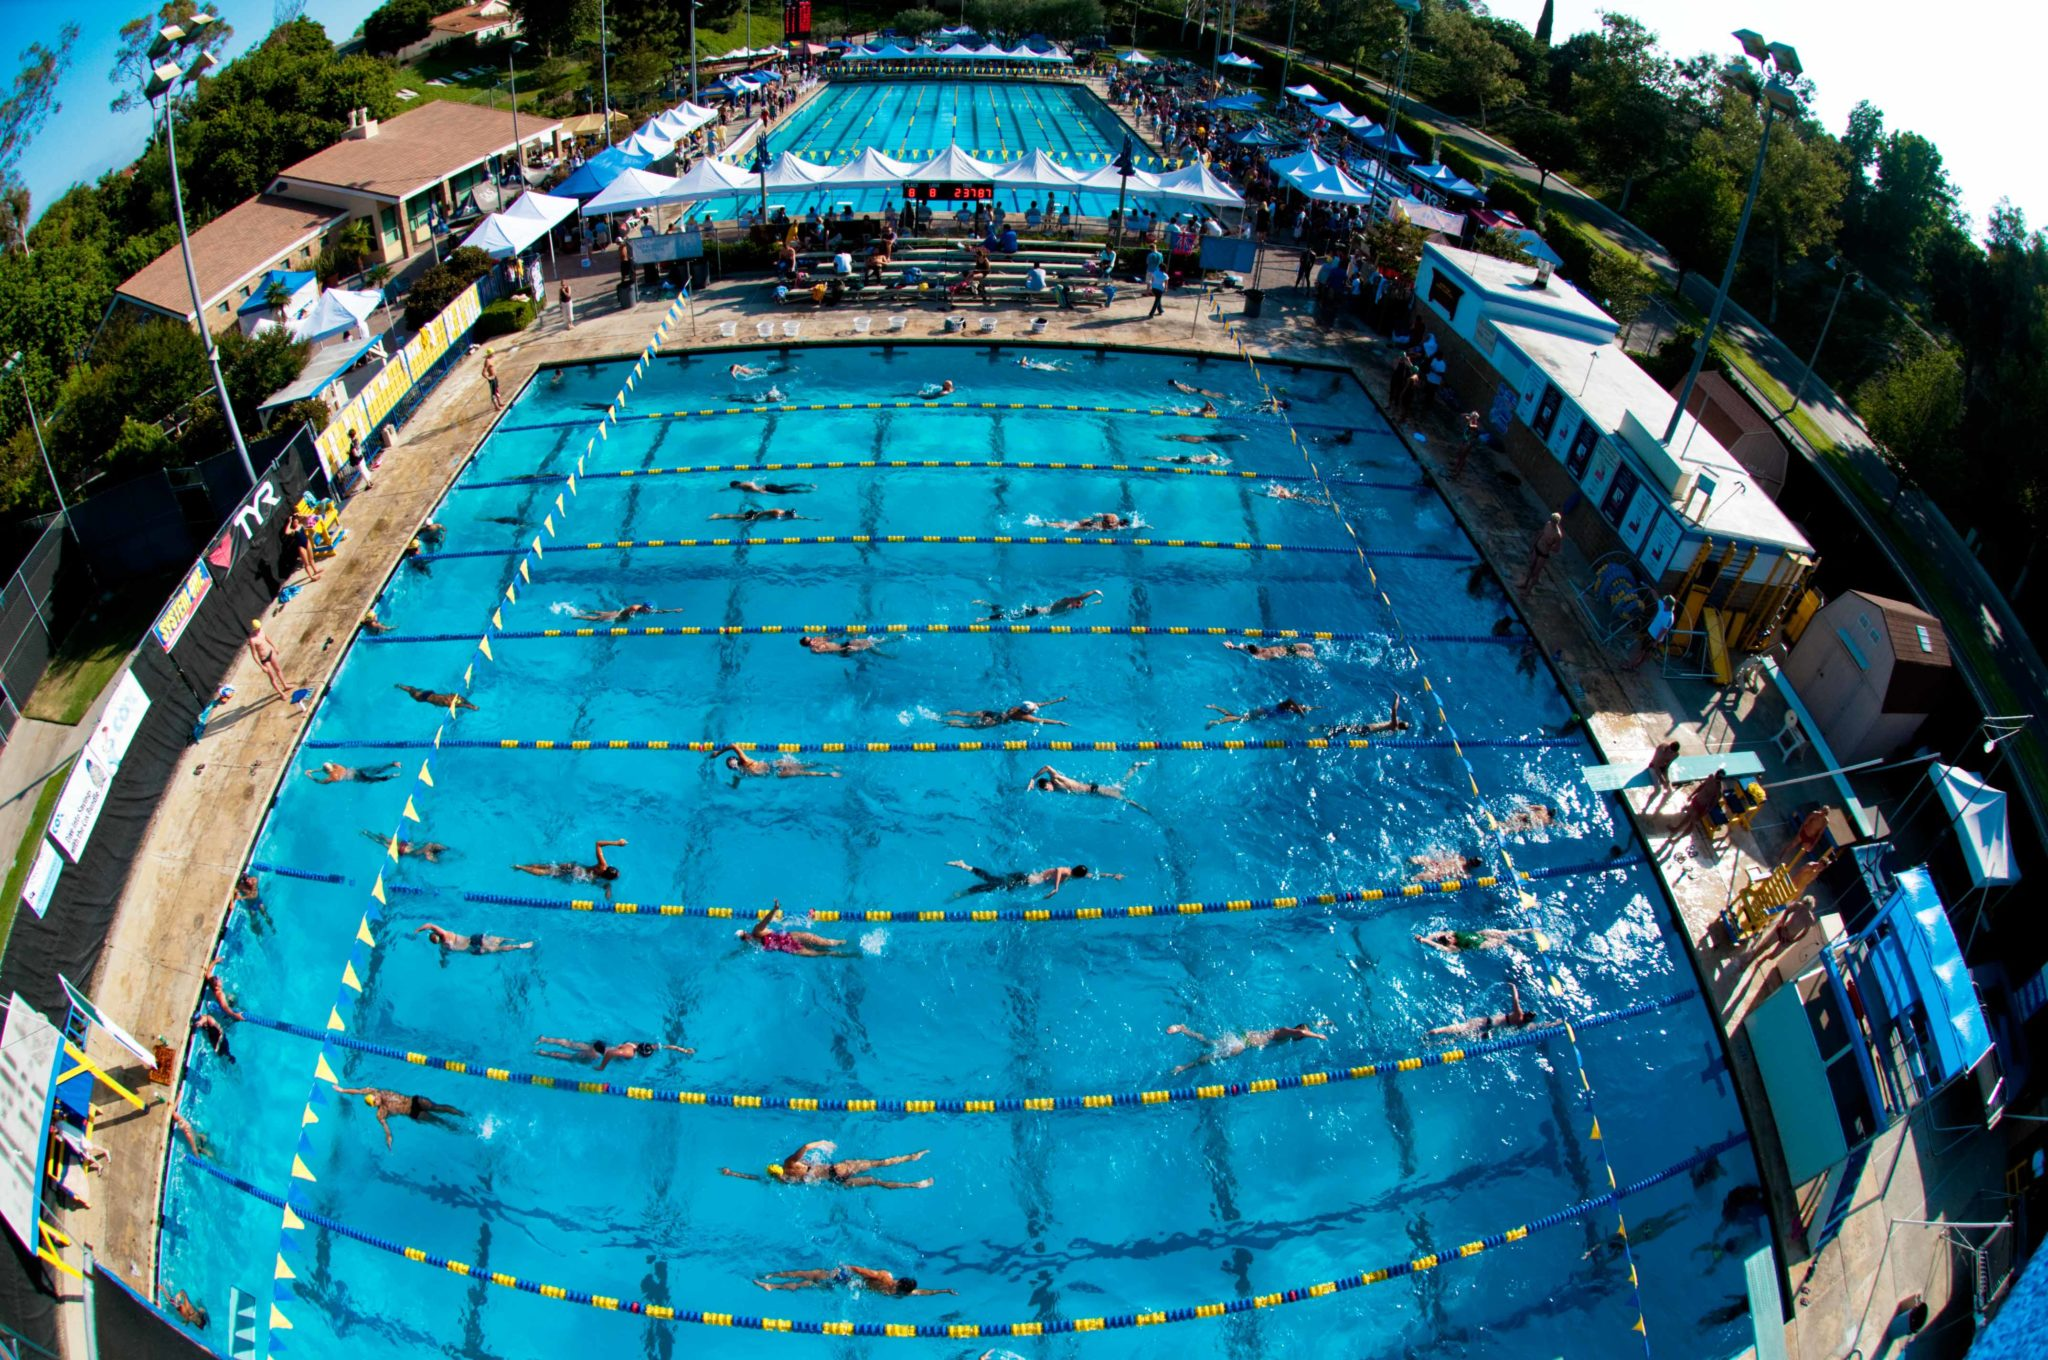 Mission viejo nadadores expecting road block in aquatic - San diego state university swimming pool ...